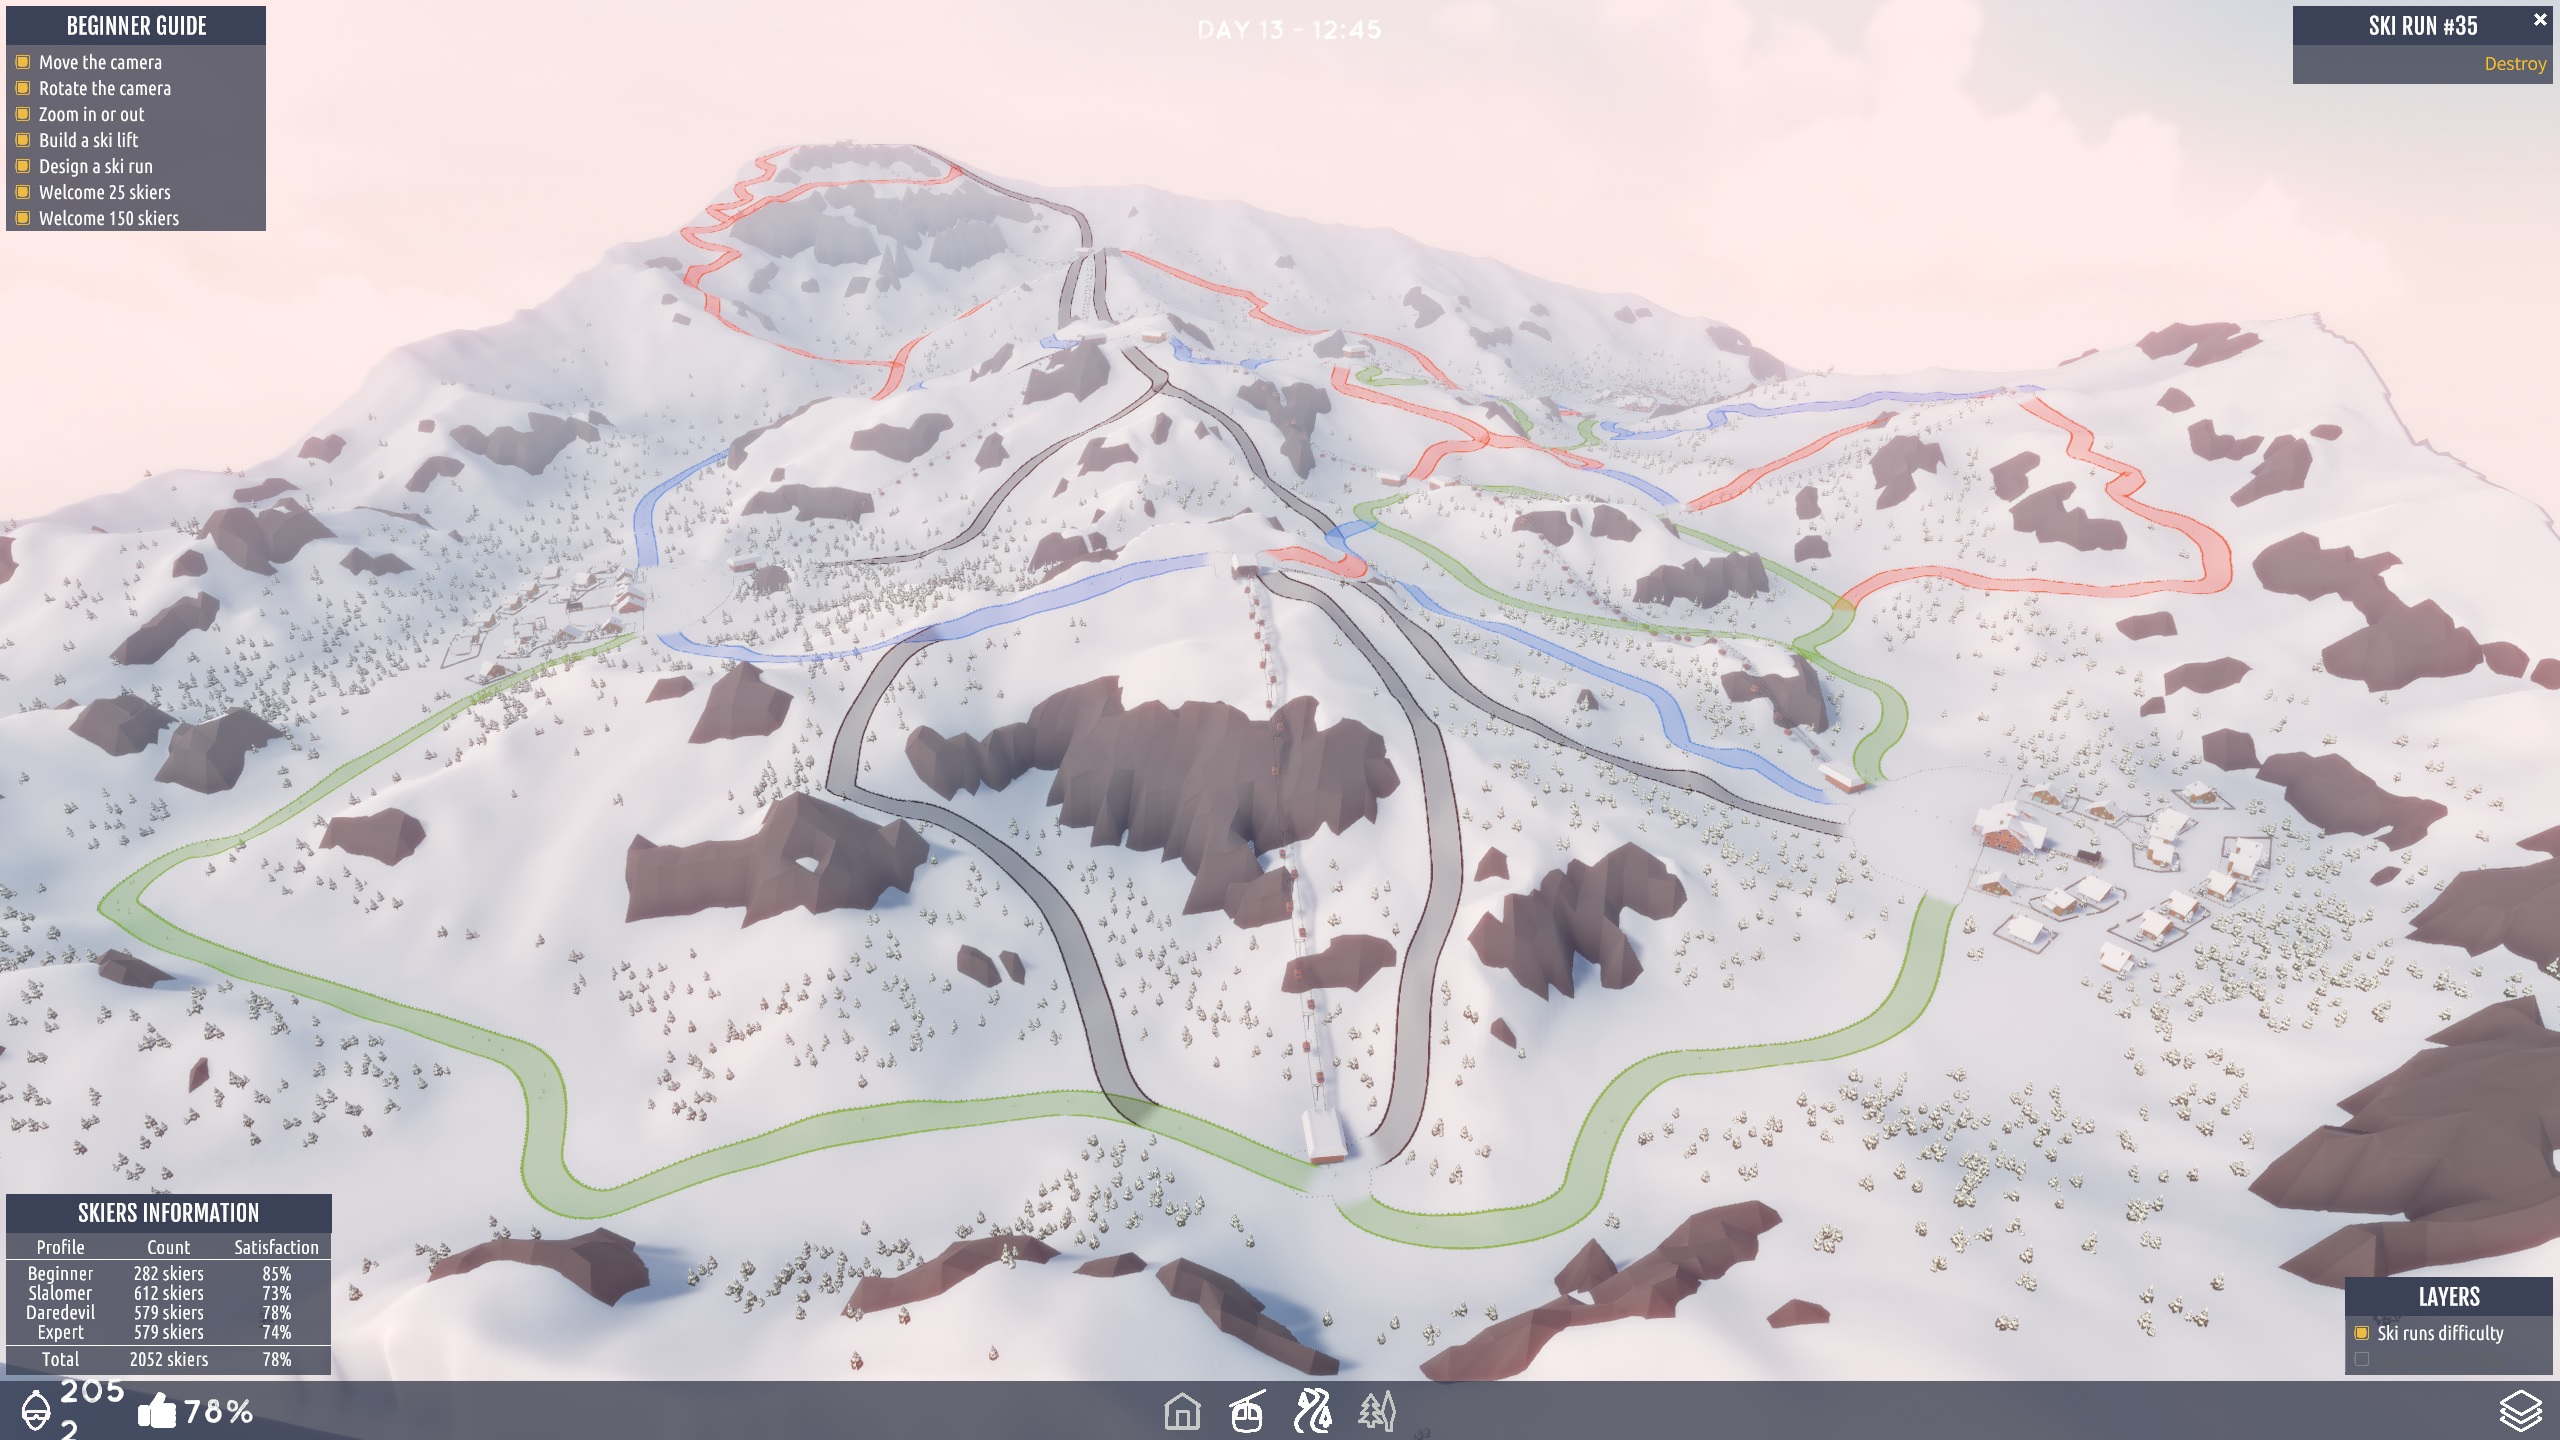 Comments 40 to 1 of 73 - Snowtopia by TeaForTwoGames